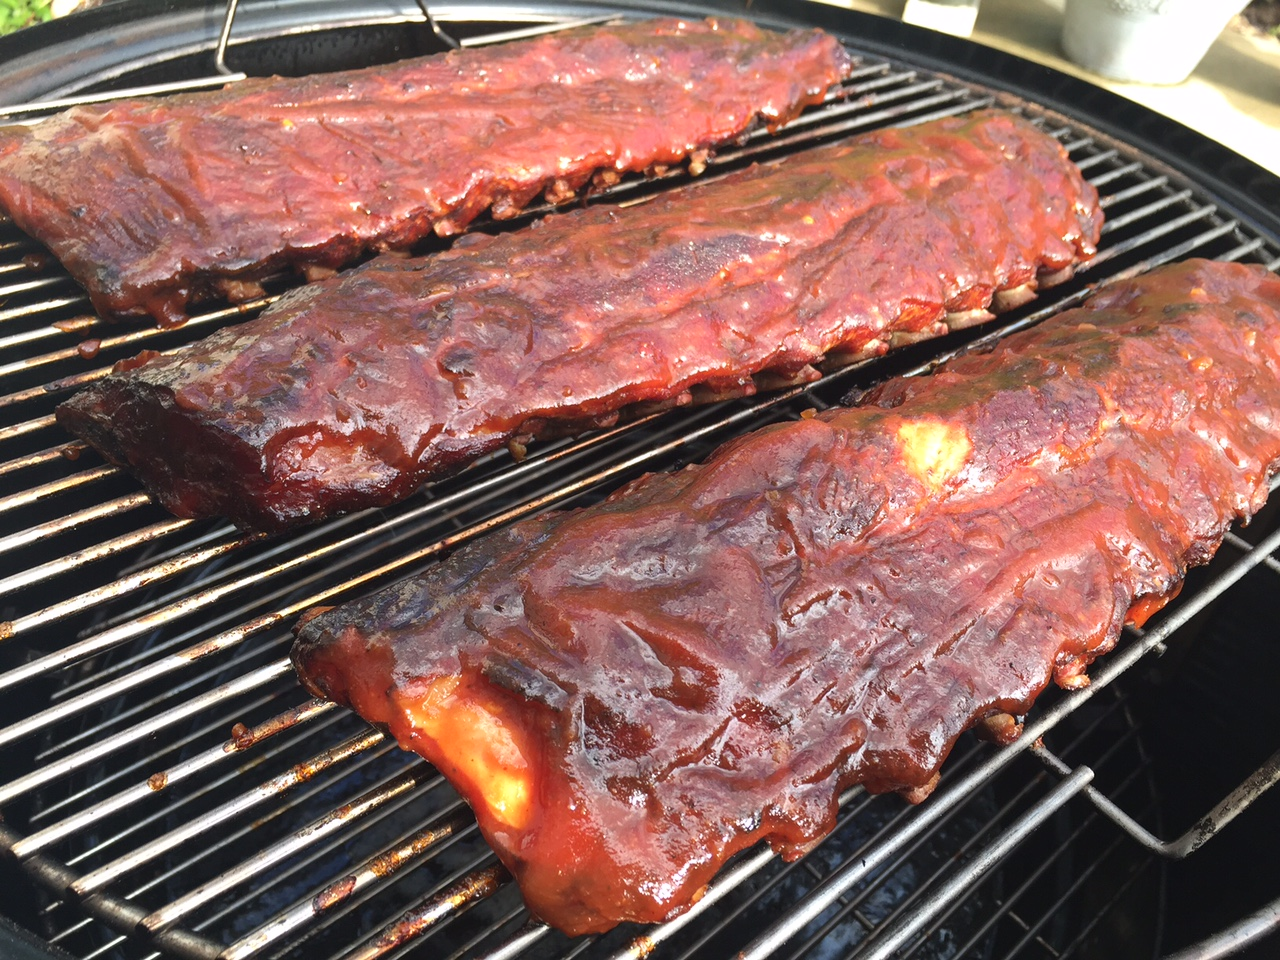 Ribs for 4th of July BBQ grilling